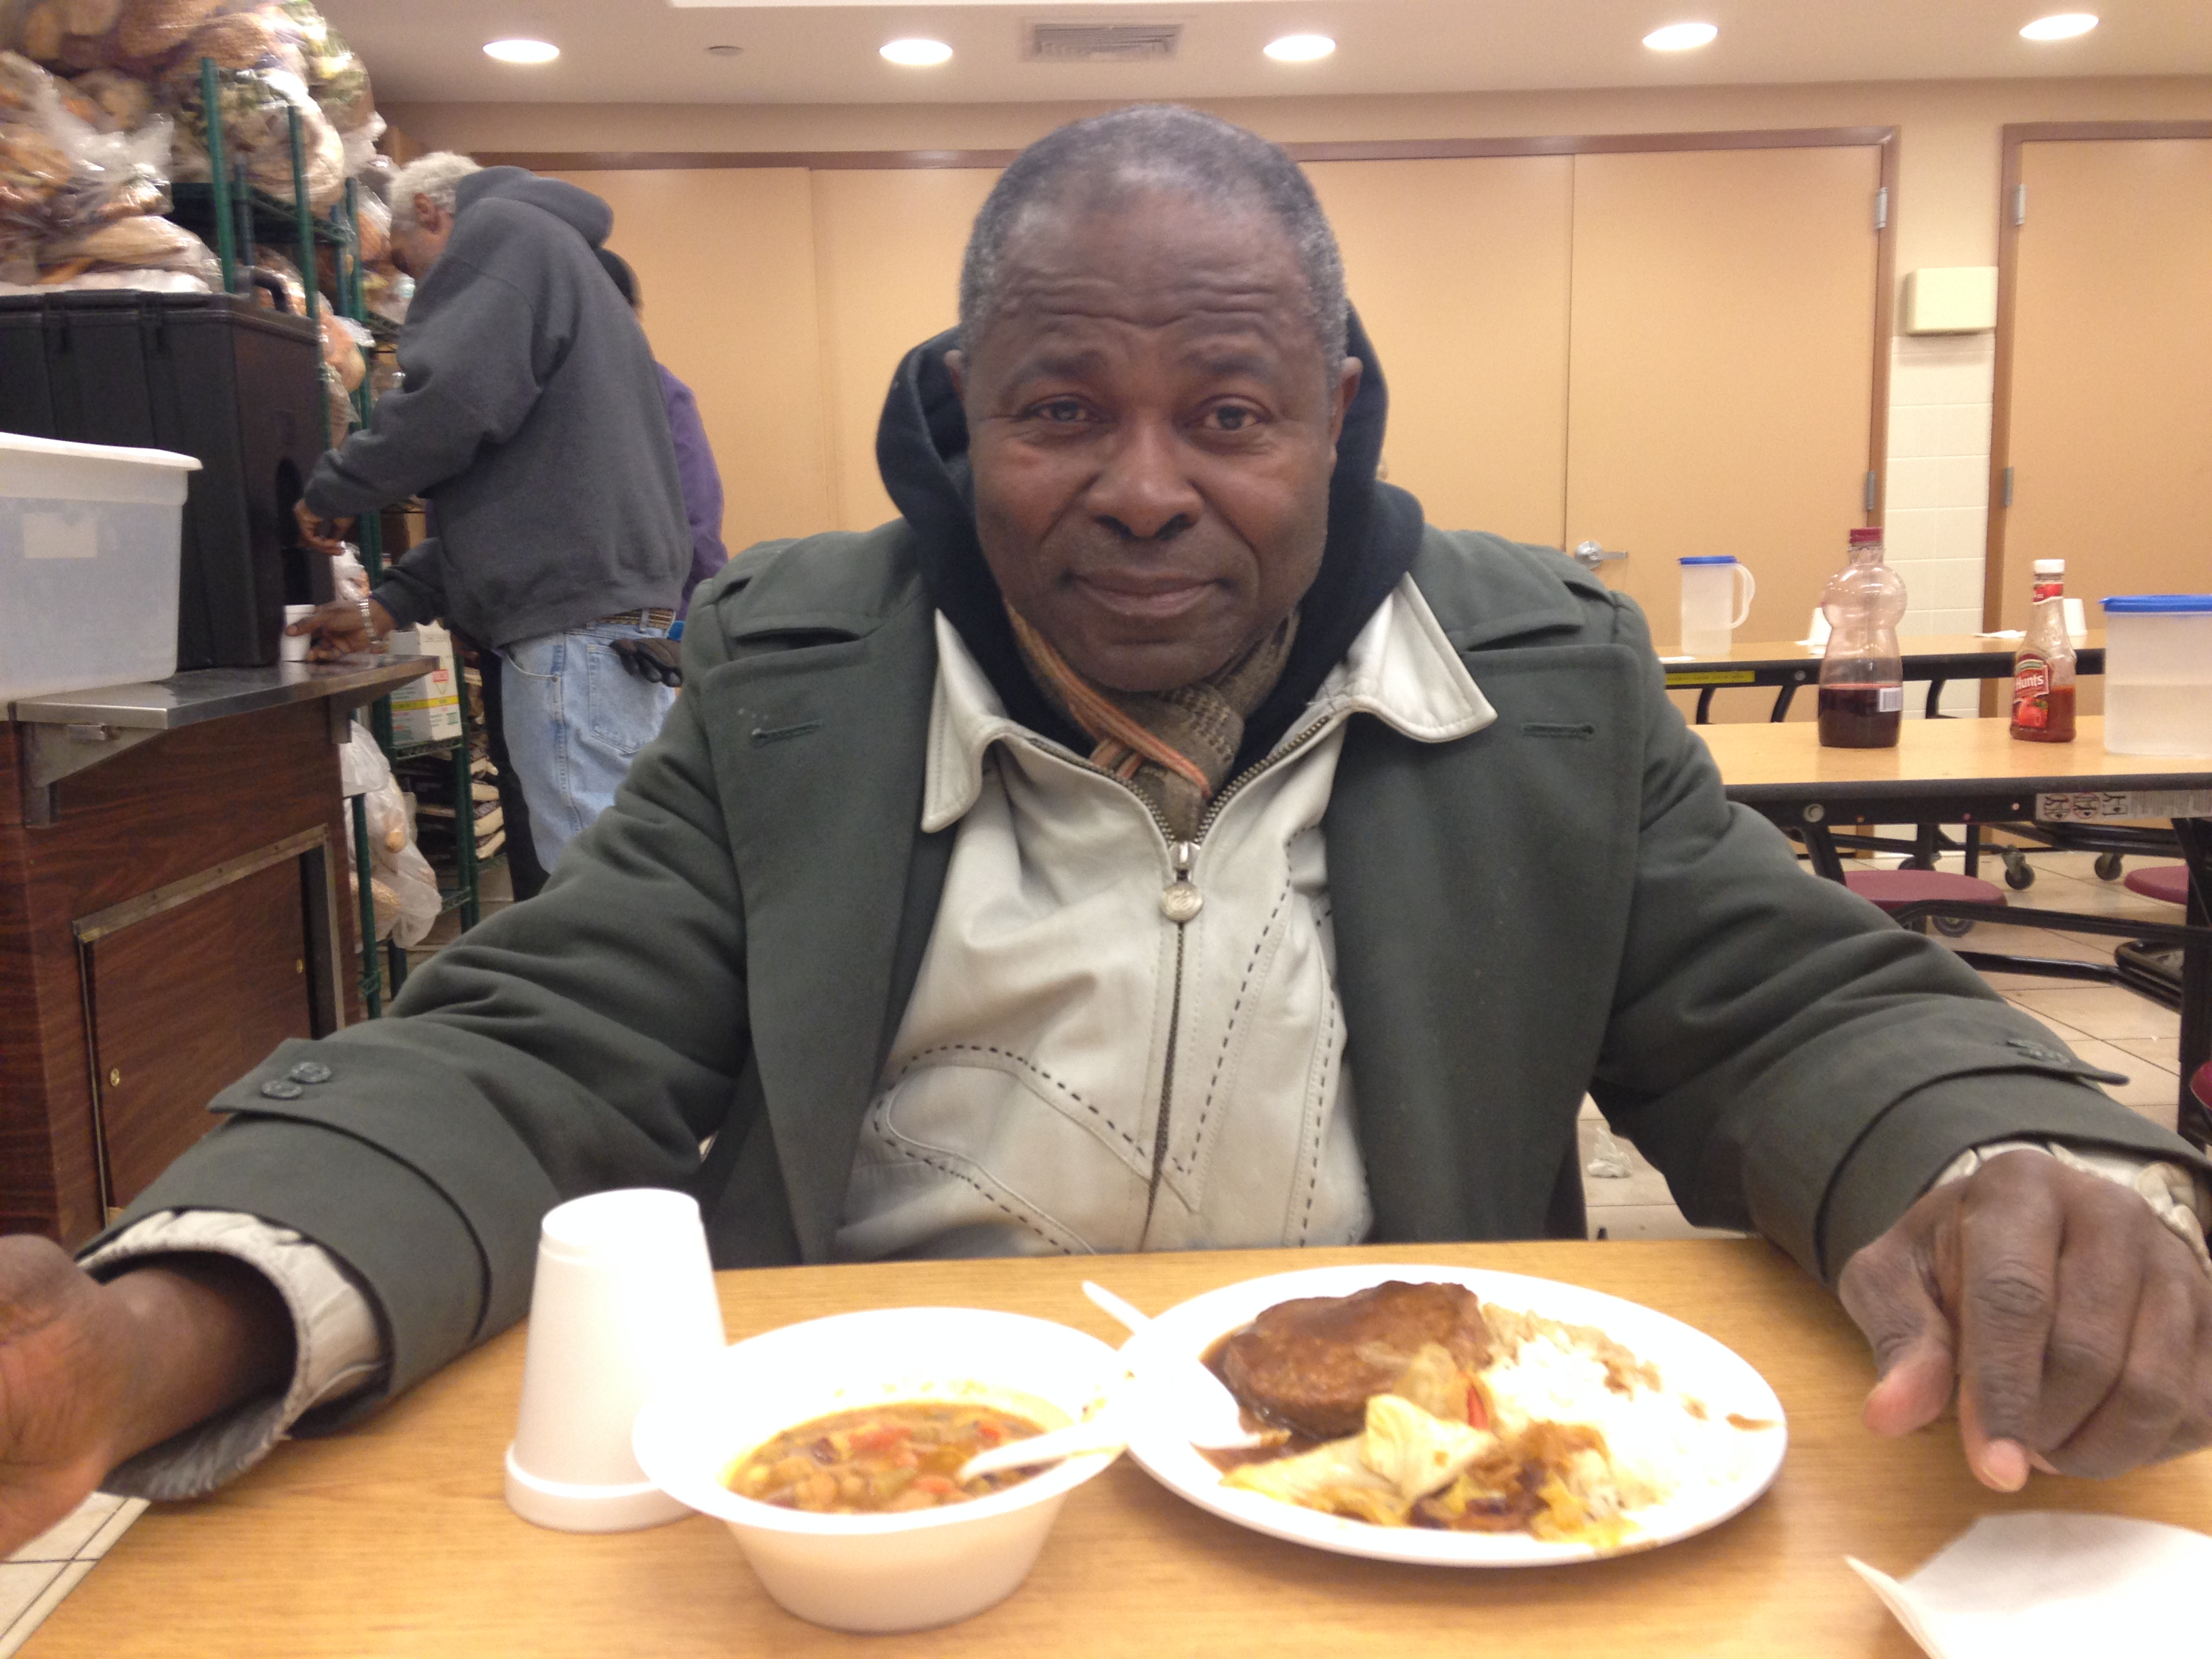 Joseph Diaby eats a hot meal at the New York City Rescue Mission in Manhattan on Jan. 29.